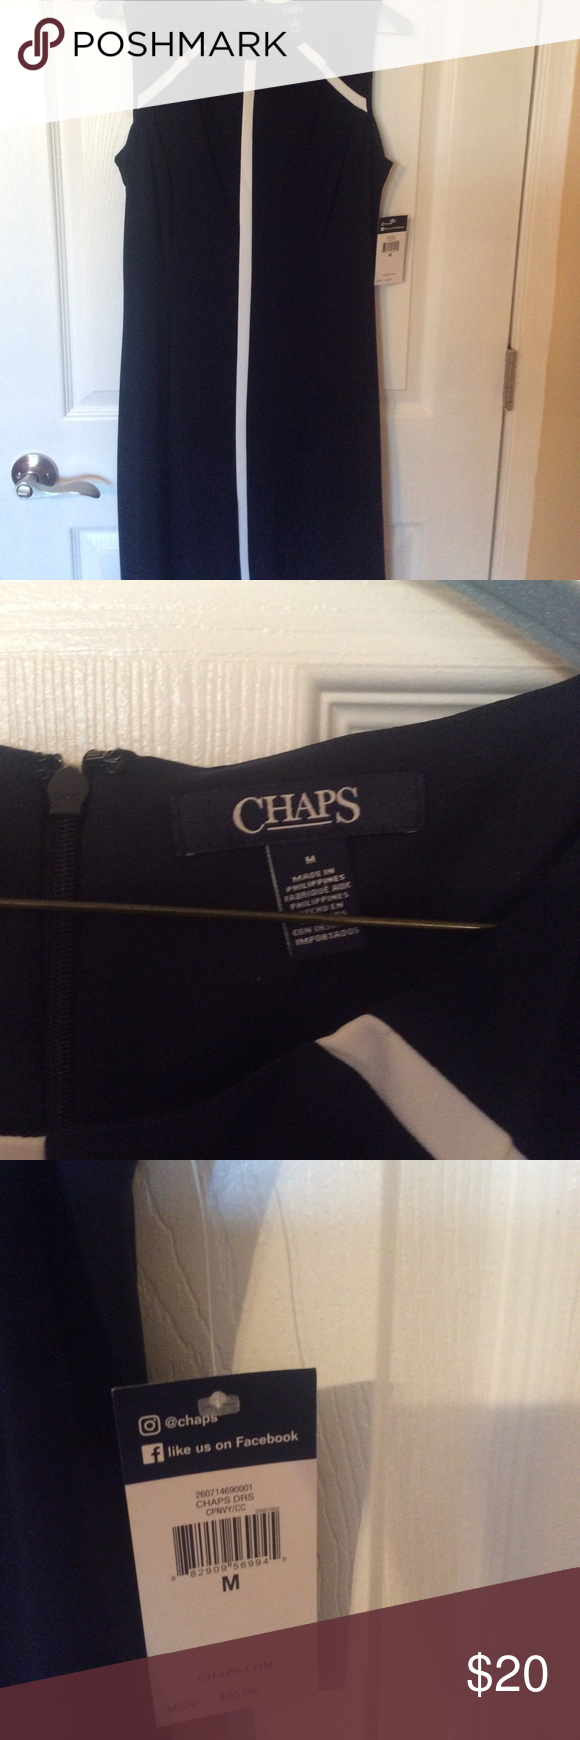 Chaps Dress NWT CHAPS Dress-Brand New! Soft and stretchy. Would be a great 'jo...